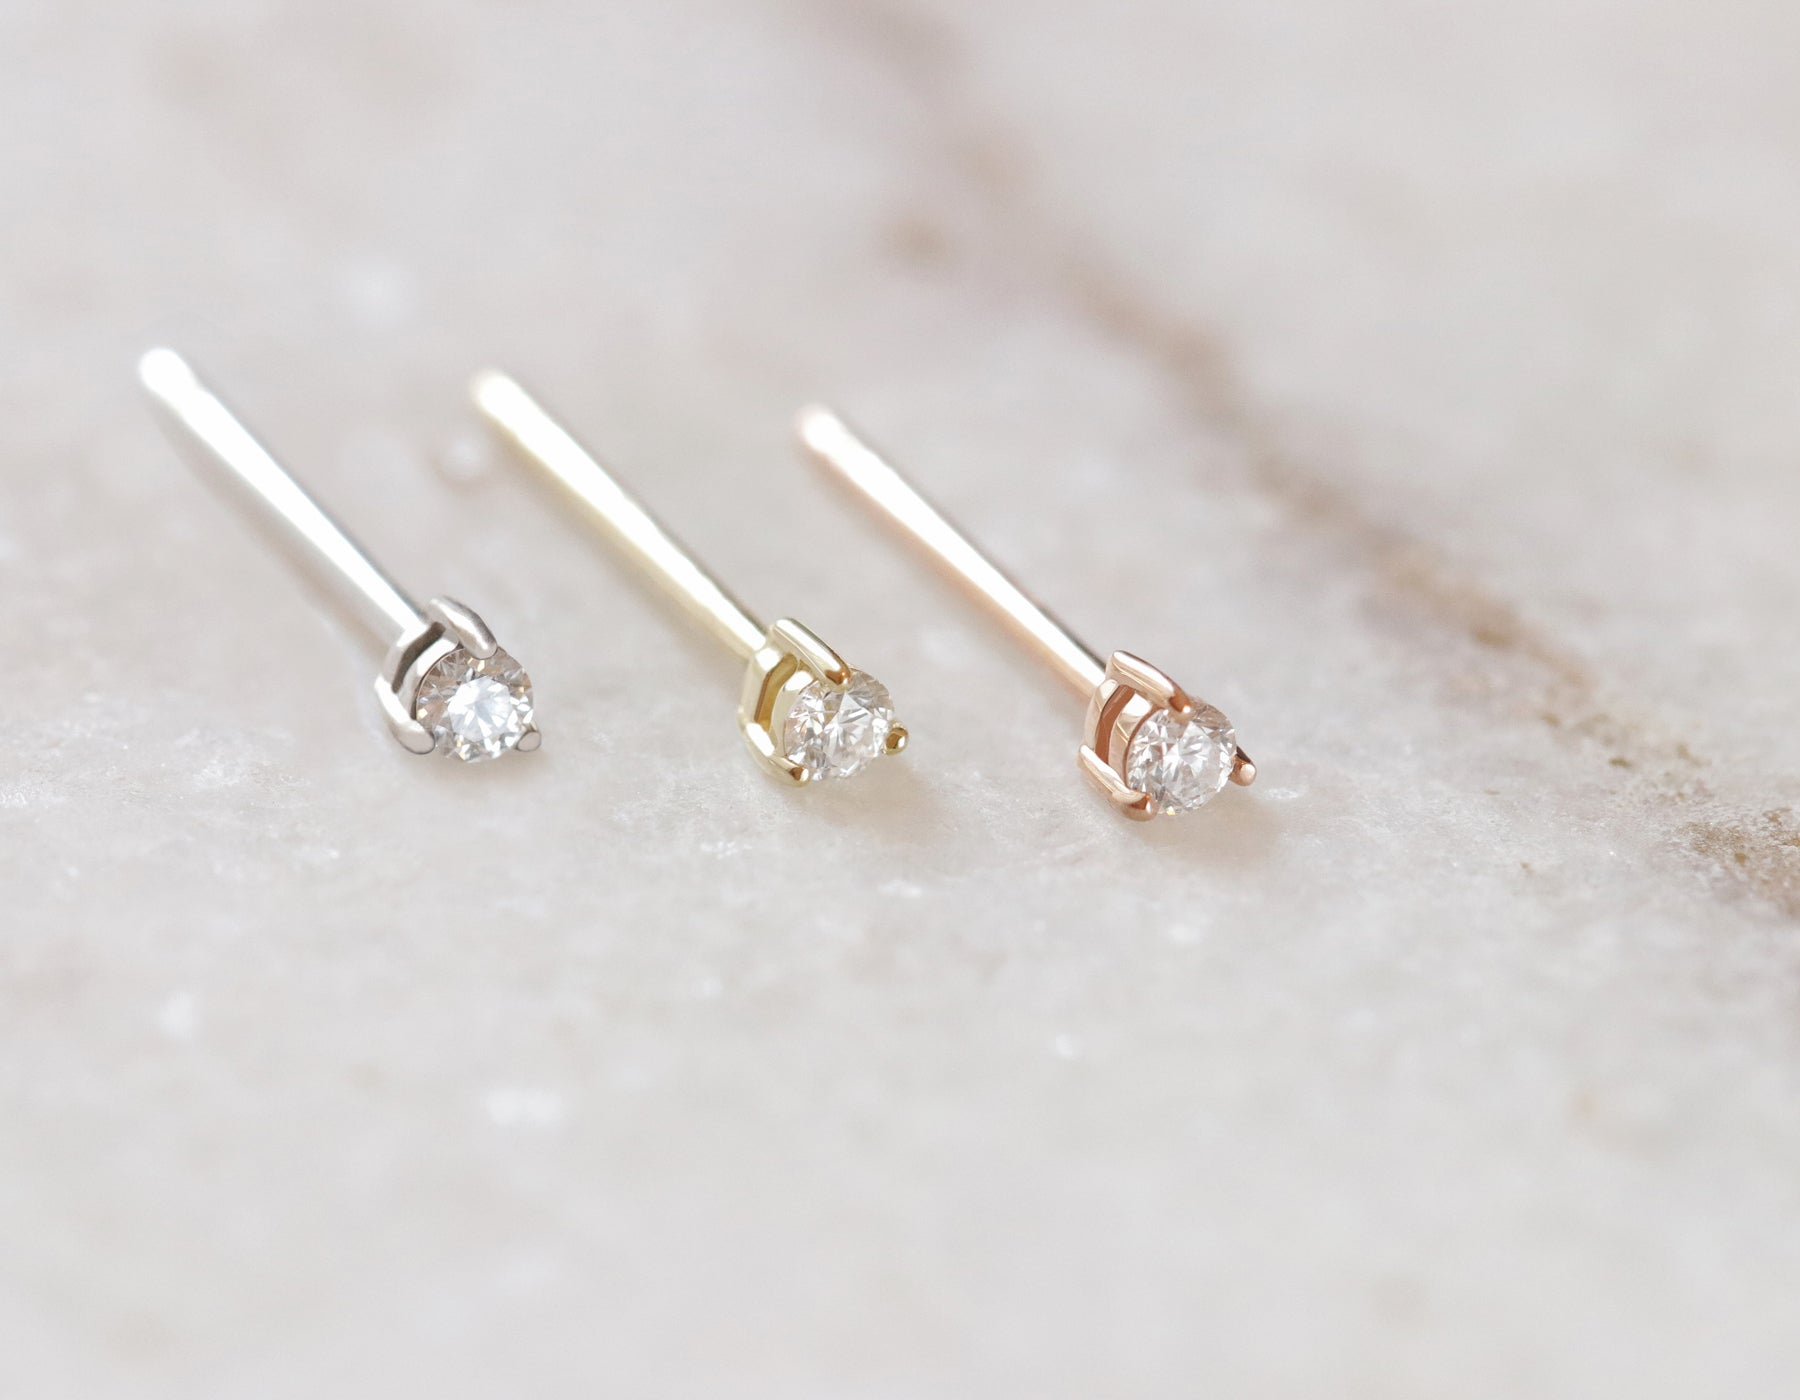 vrai-and-oro-tiny-diamond-studs-2.jpg (1800×1400)